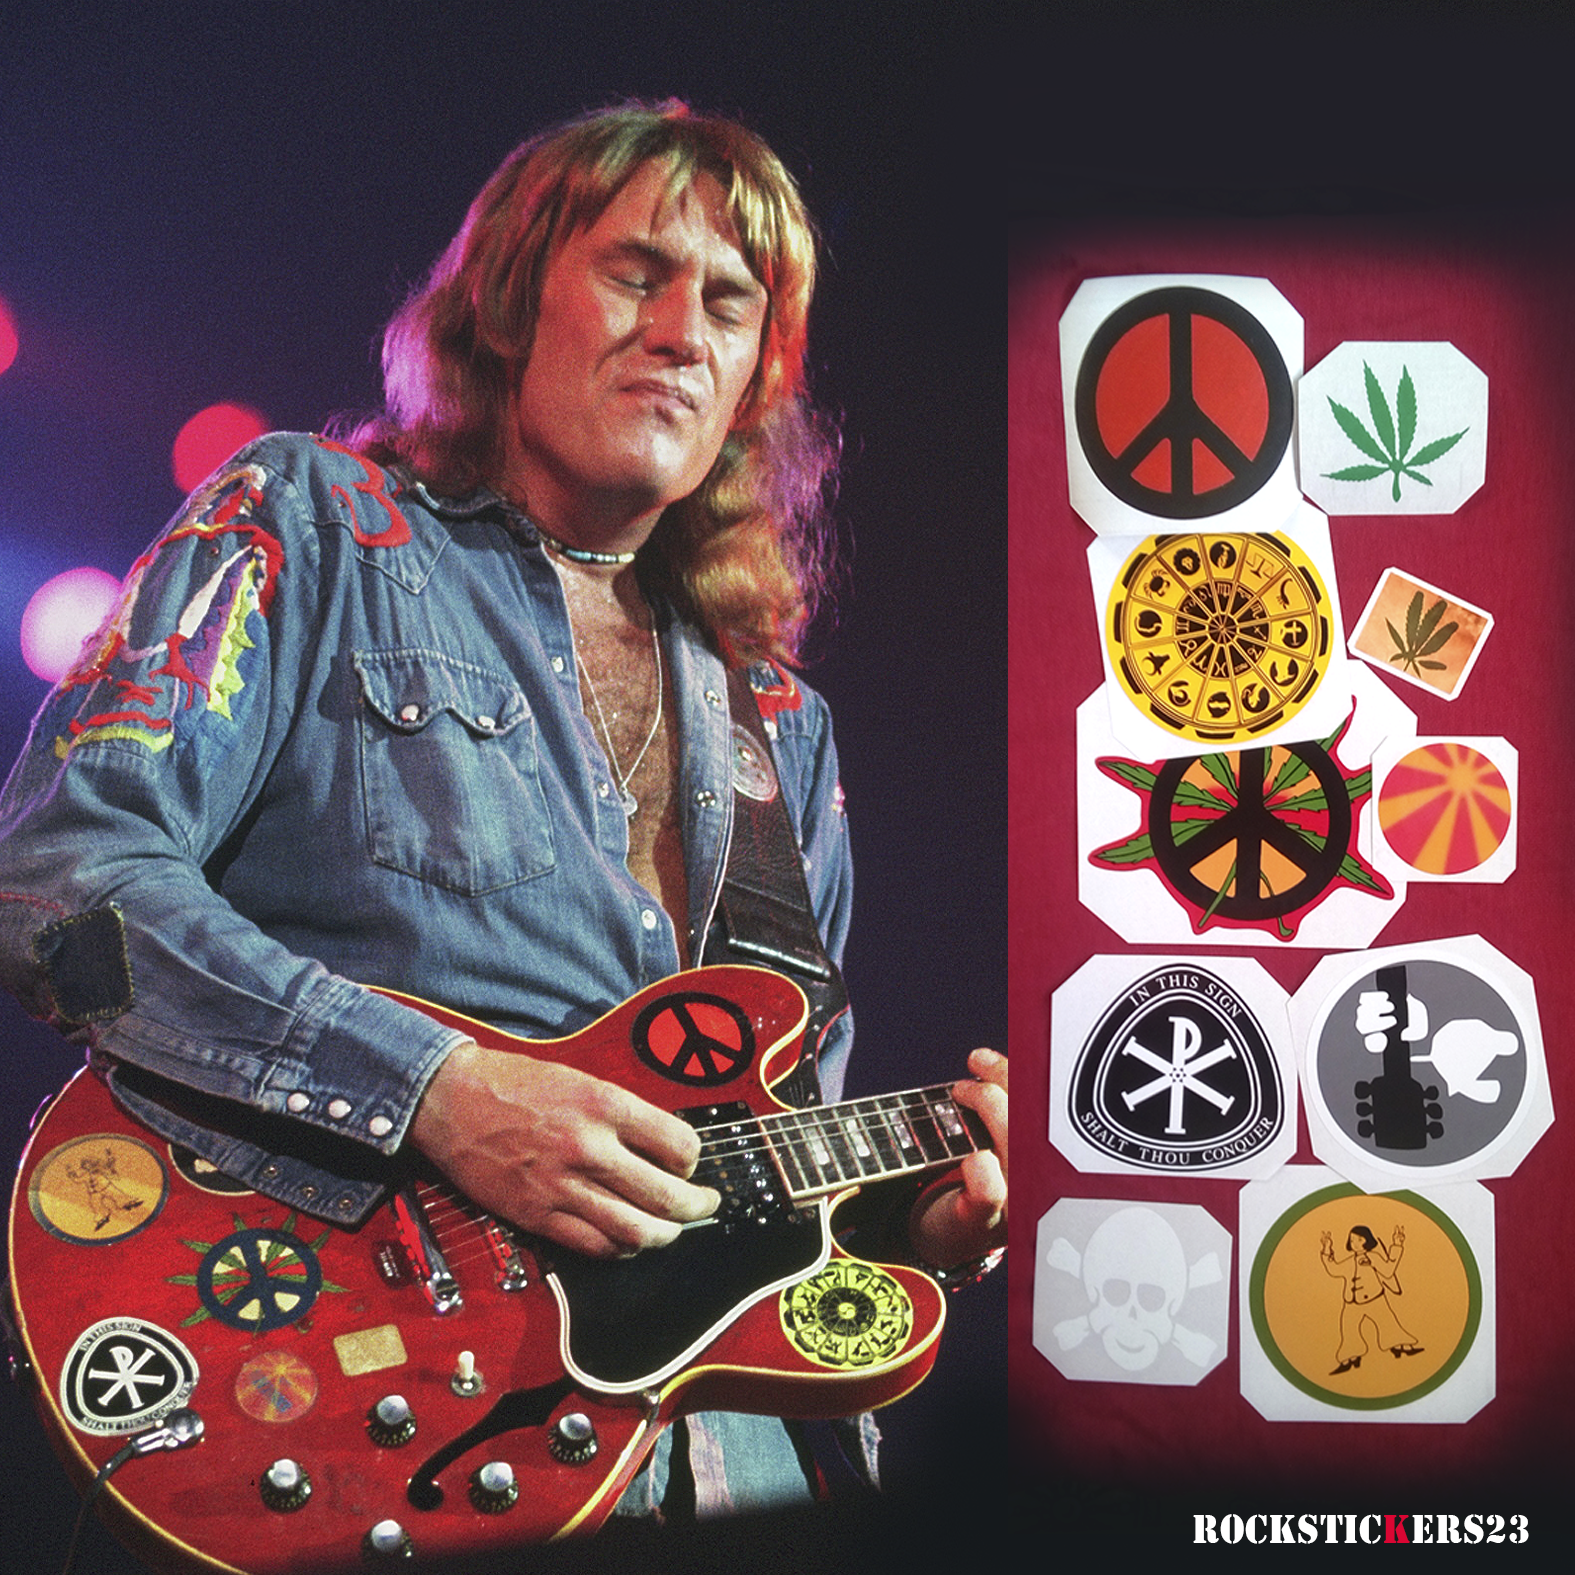 Alvin lee guitar stickers replica ten years after gibson big red es 335 custom decal saguitar set 10